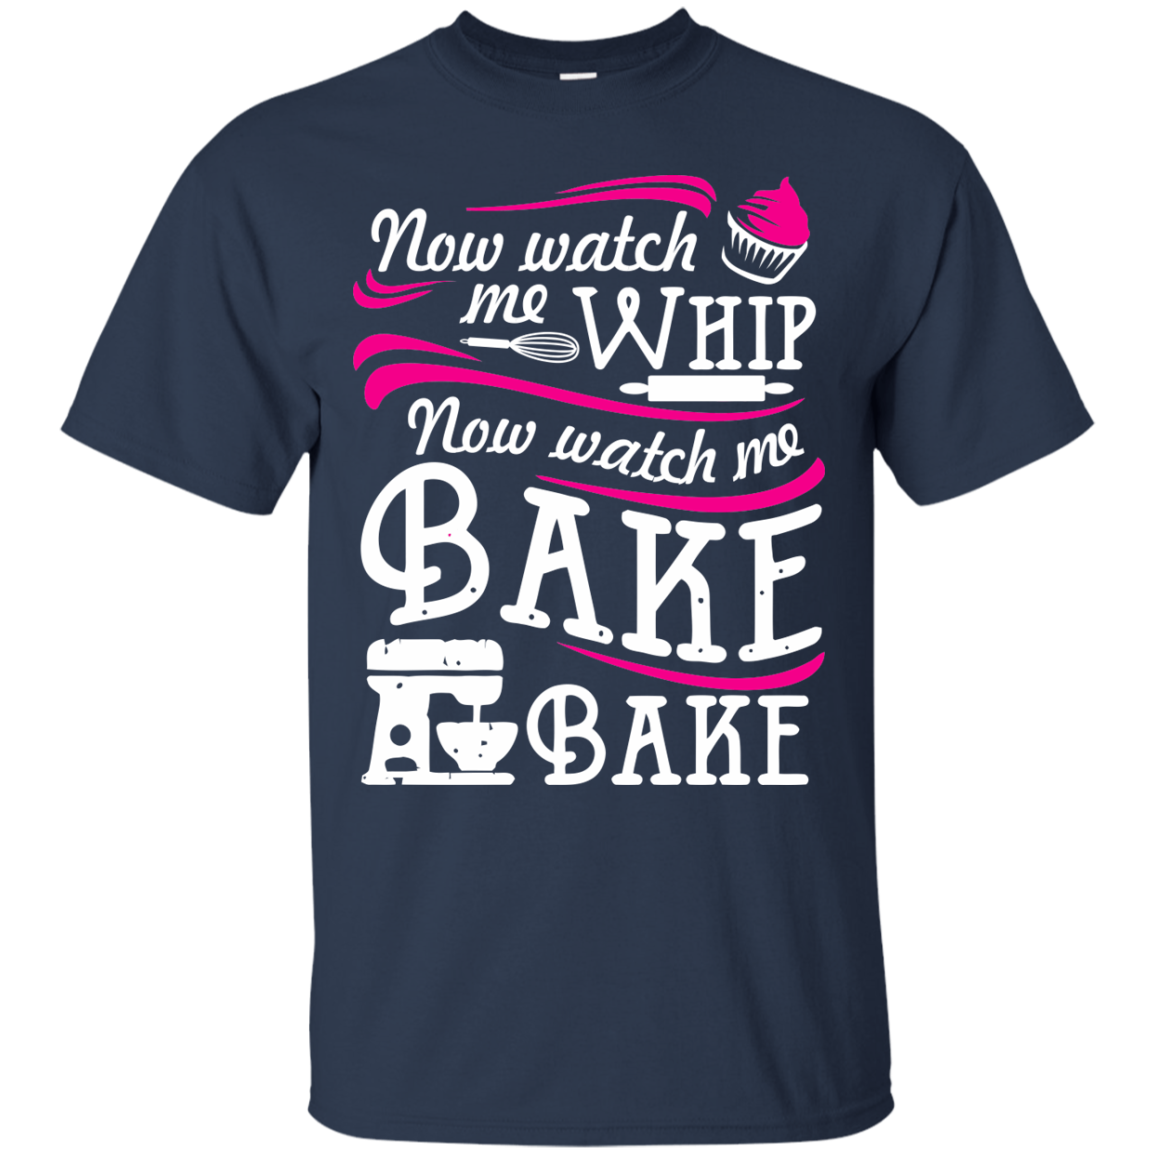 Baking T-Shirts Hoodies now watch me bake bake - Blue Fox